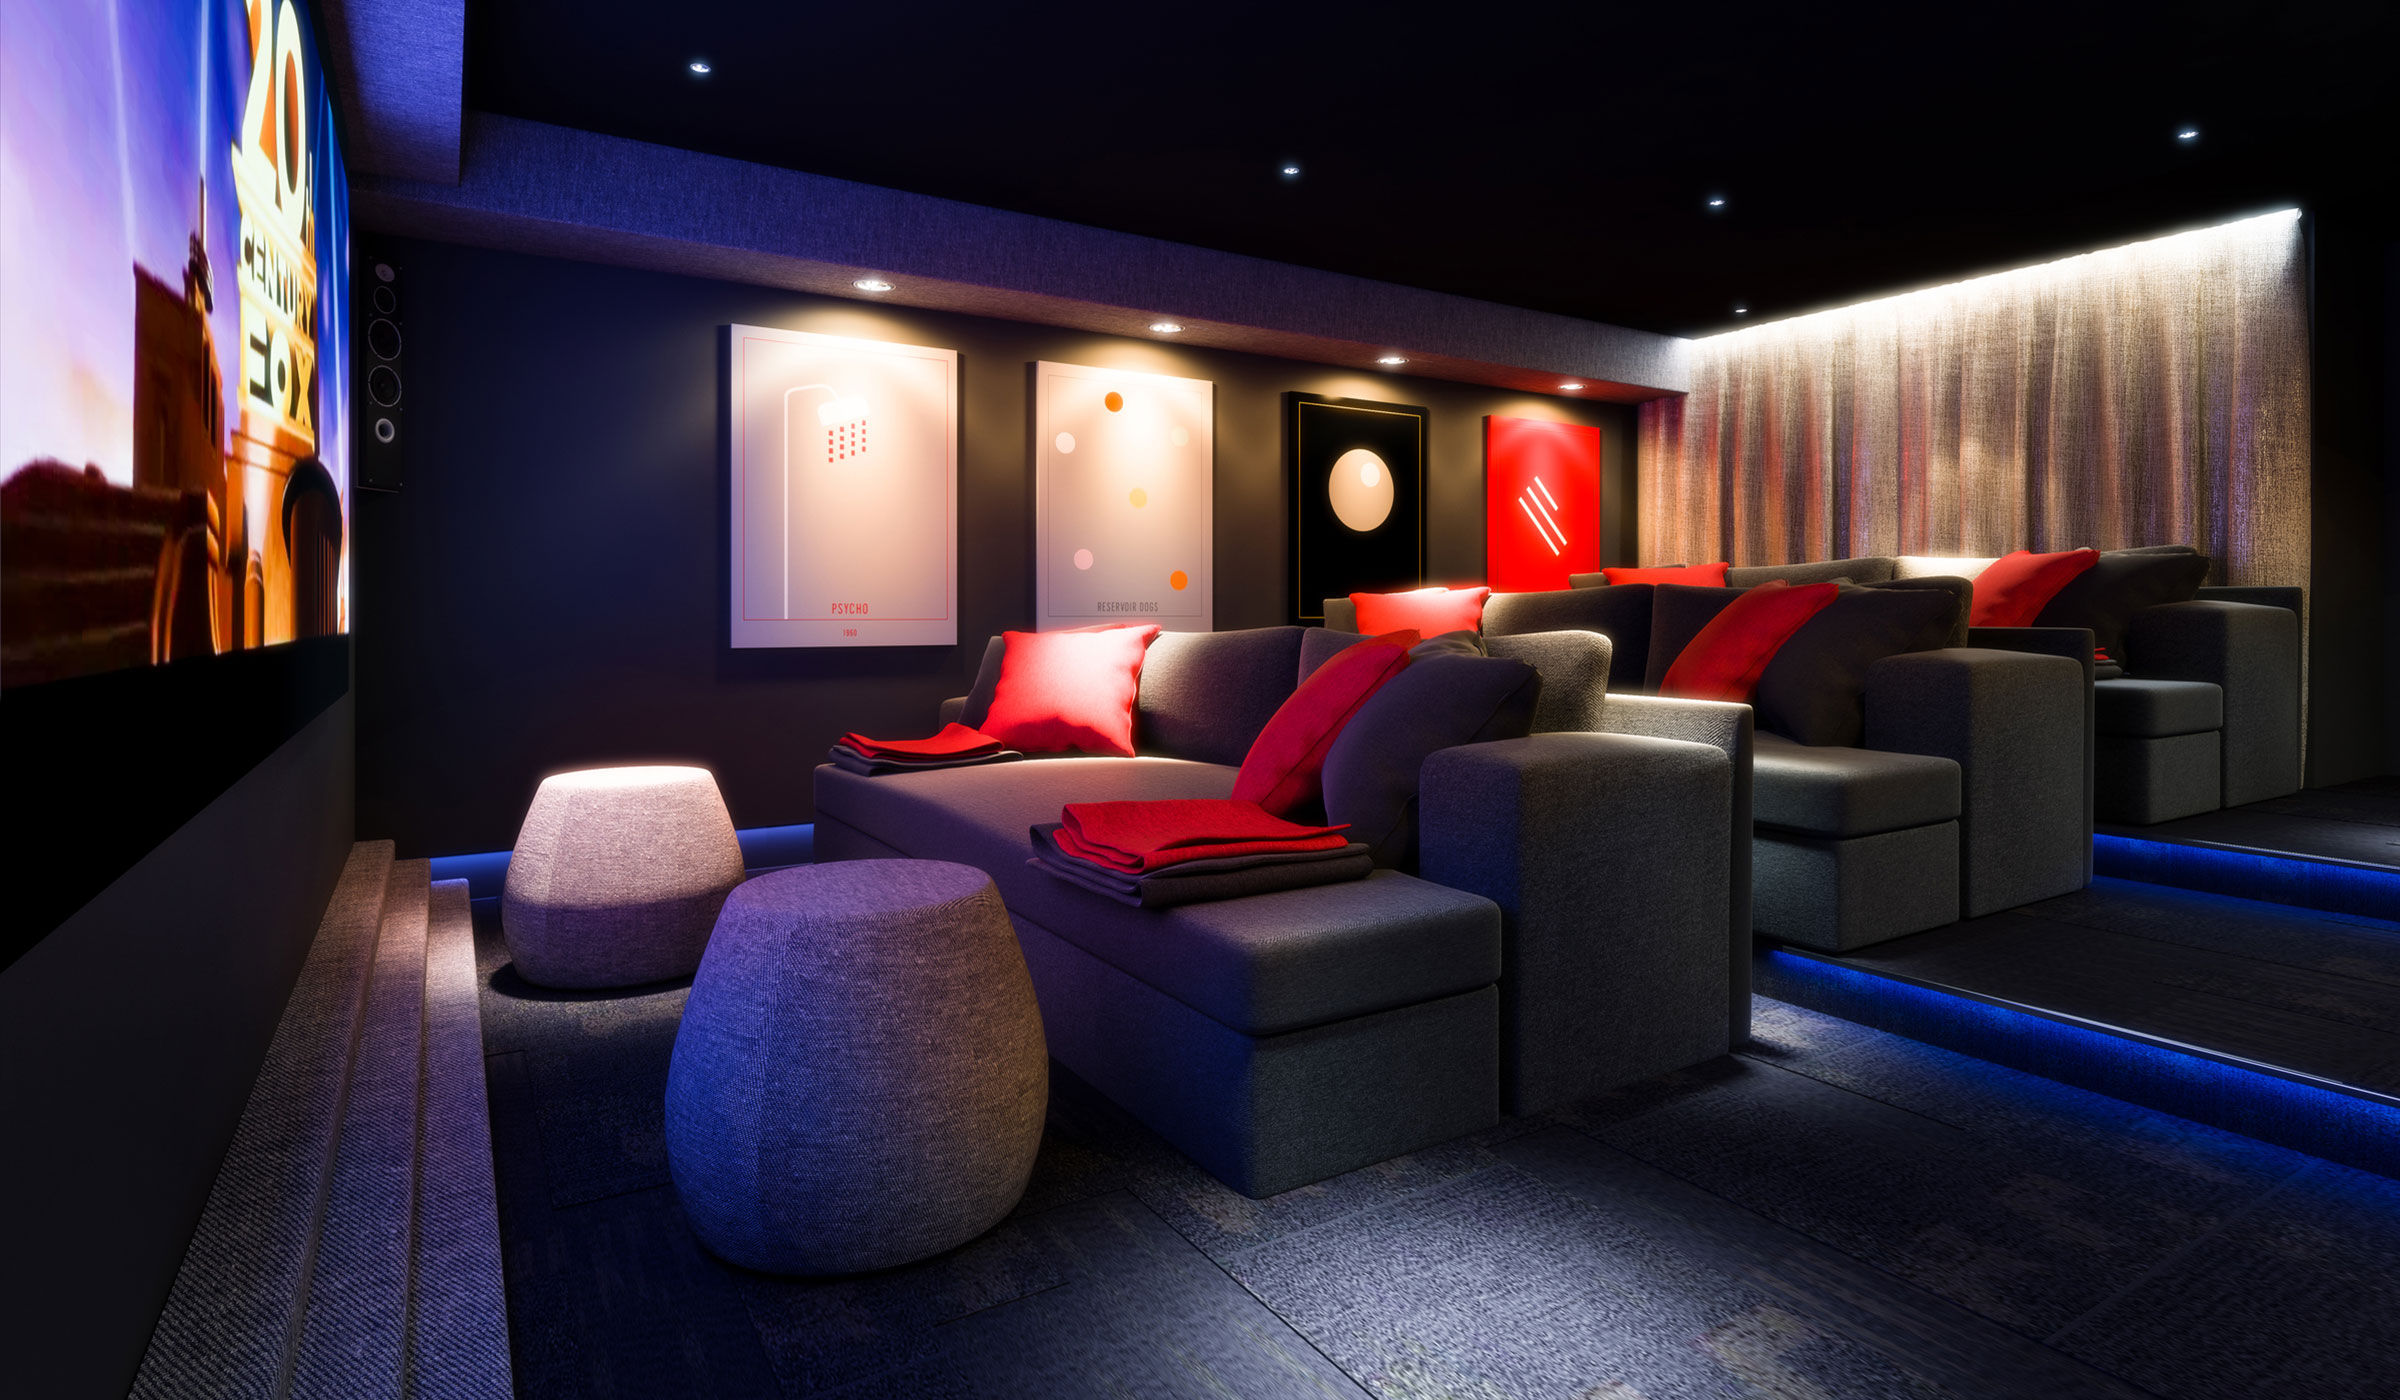 Vibe Student Living cinema